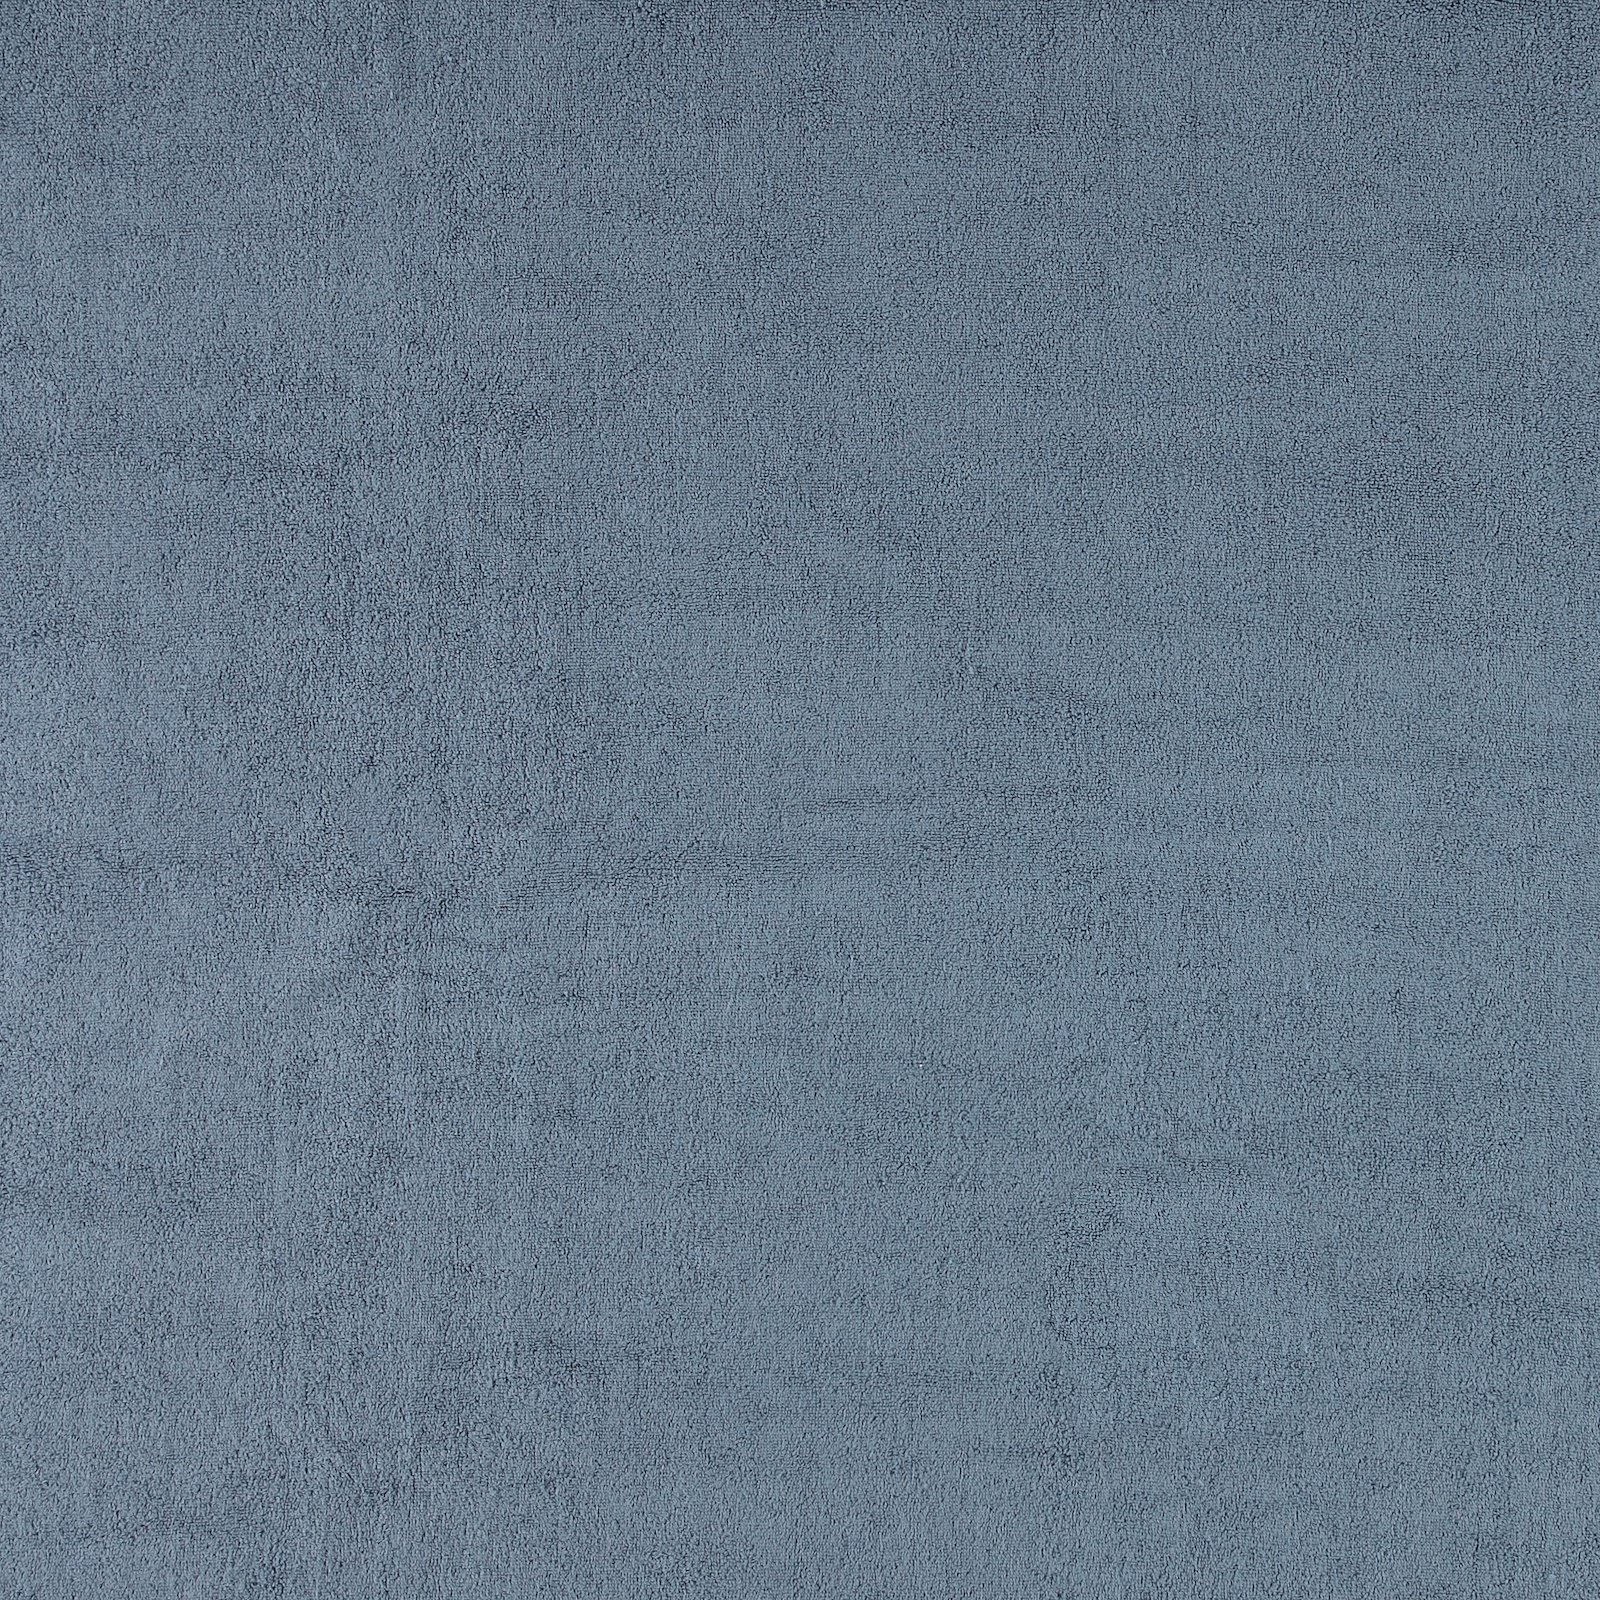 Bamboo terry antique blue double faced 250715_pack_solid